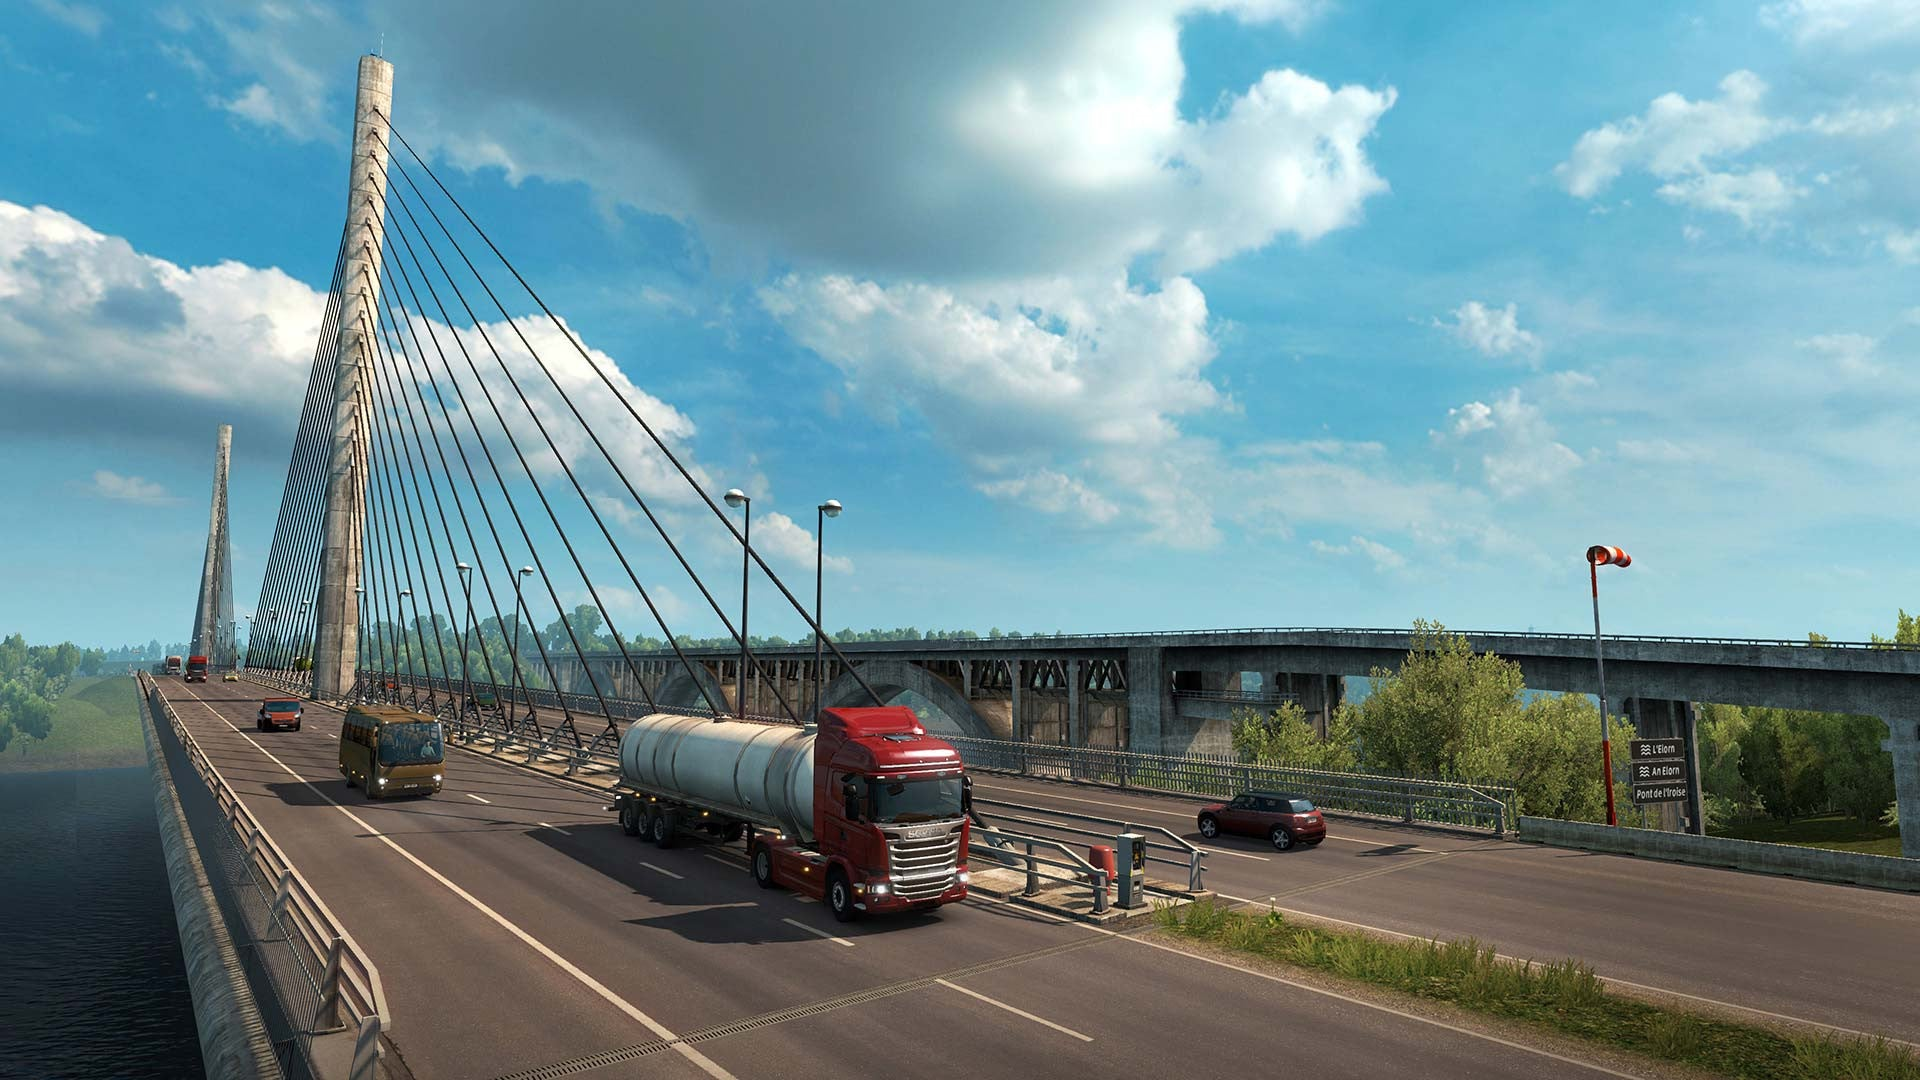 Euro Truck Simulator 2 - Vive La France! Add-on - Excalibur  - 2